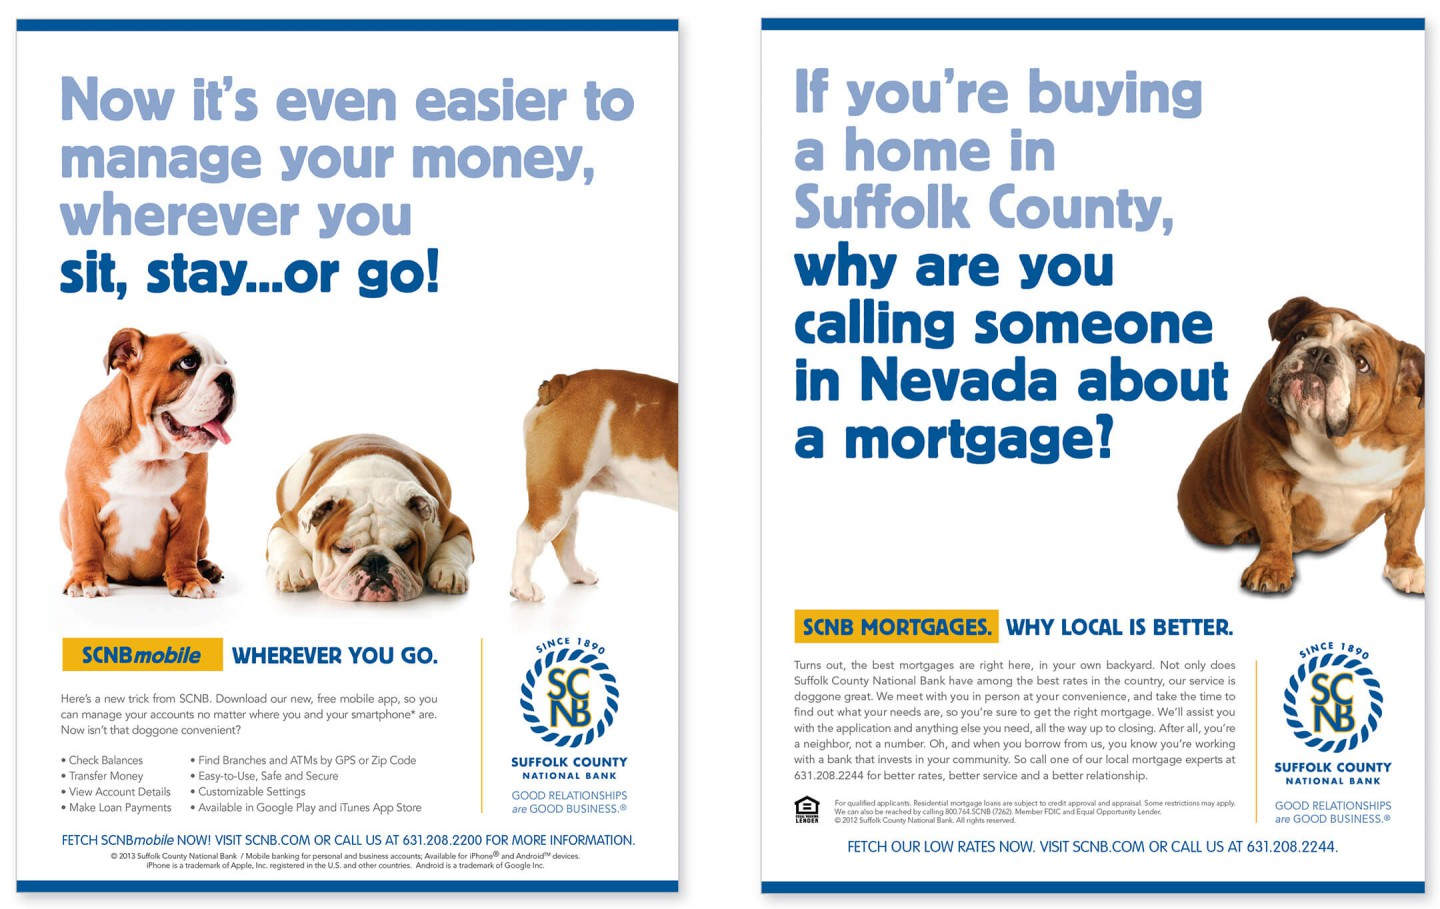 Ad for Suffolk County National Bank